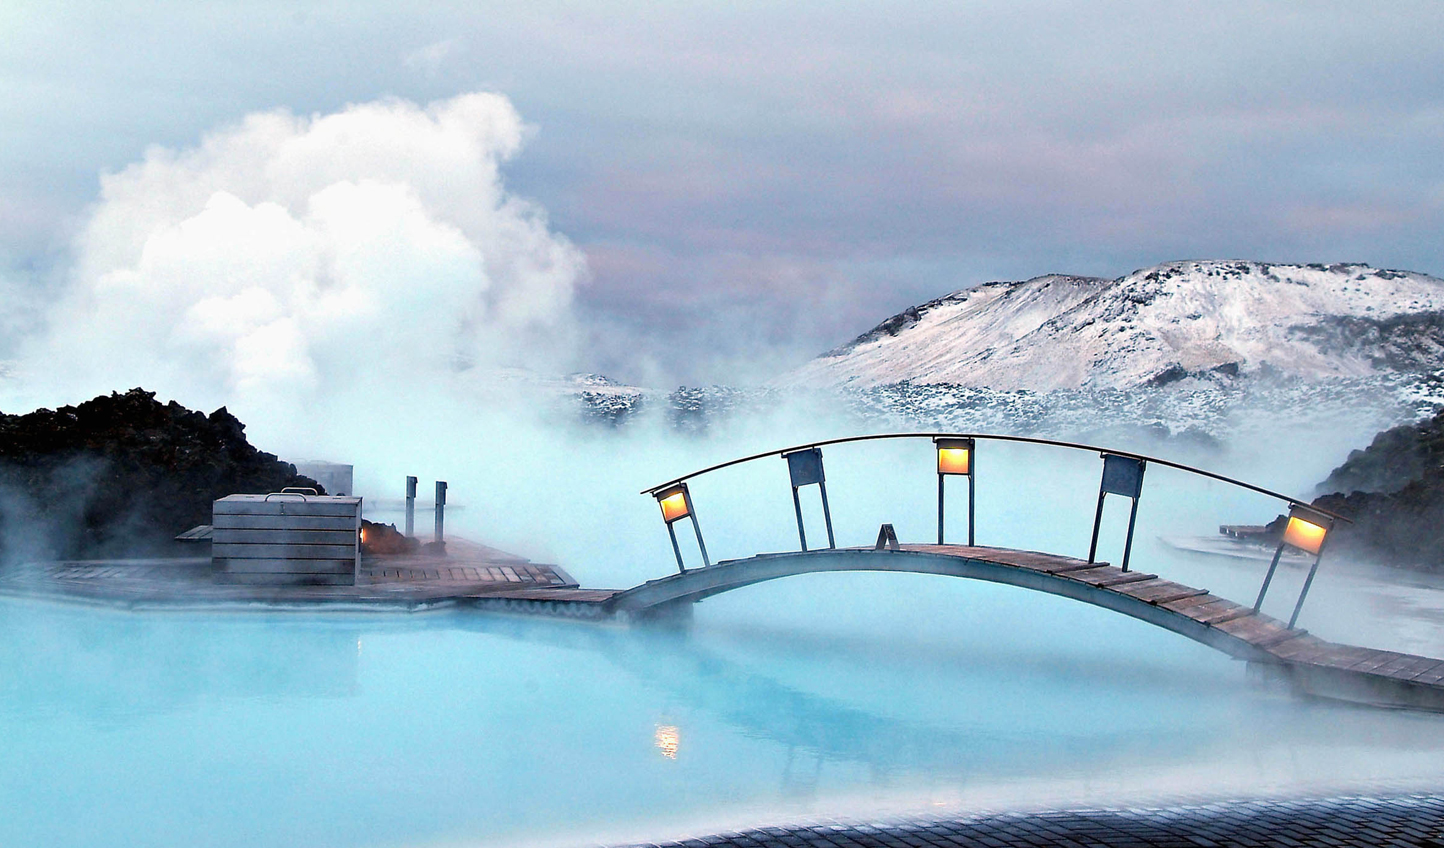 Take a dip in the geothermal waters of the Blue Lagoon